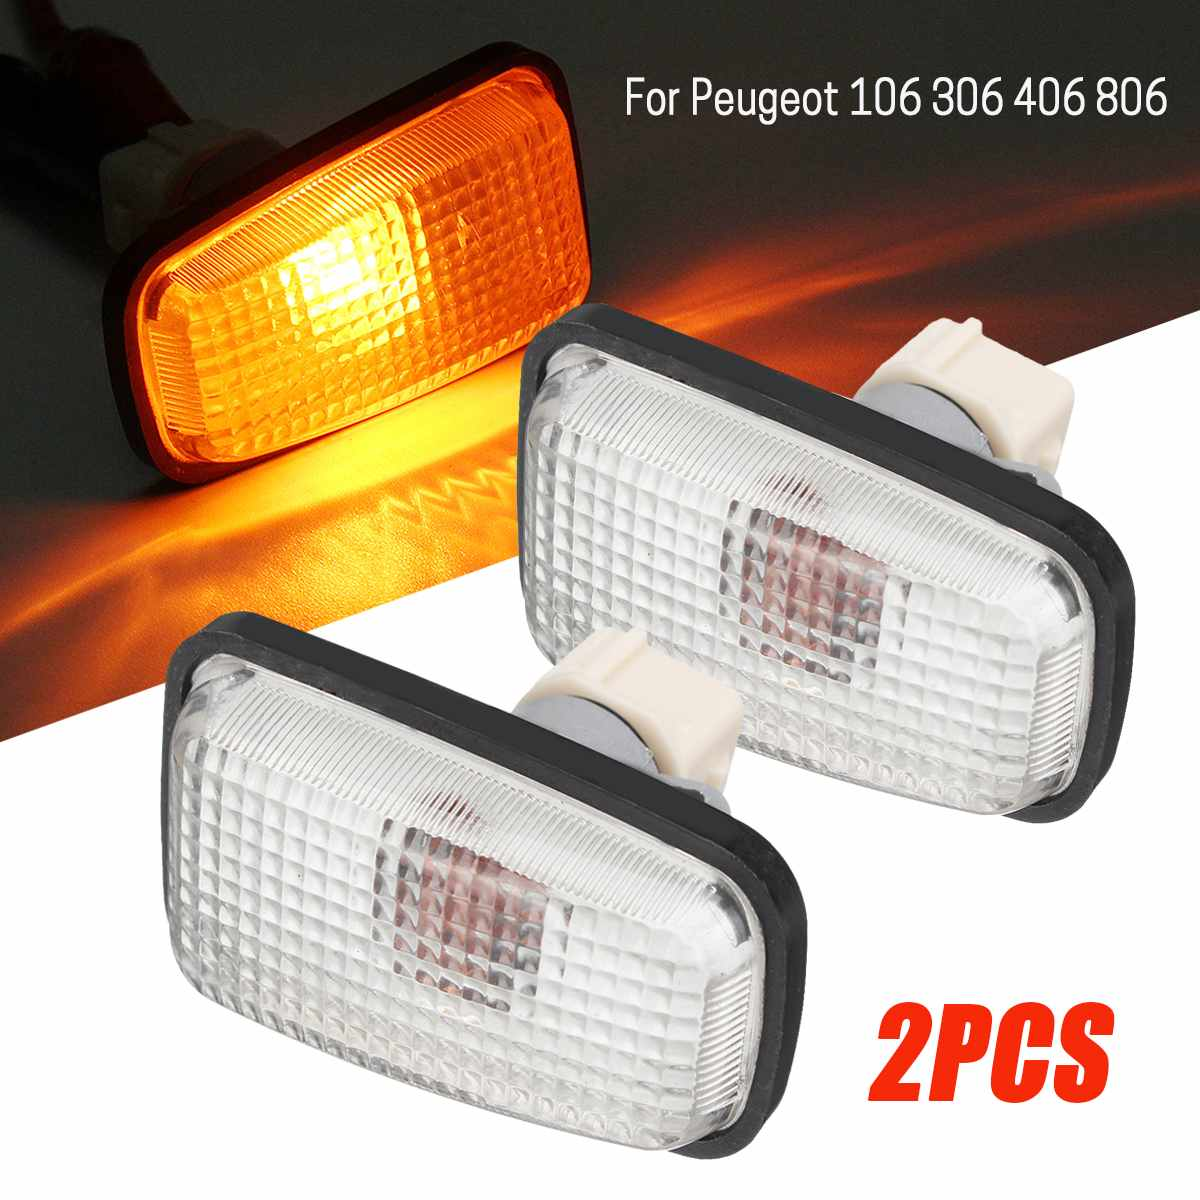 2PCS 12V Side Marker Light Repeater Lamp Blinker For Peugeot 106 306 406 806 Saxo Berlingo Xsara Side Indicator 632567